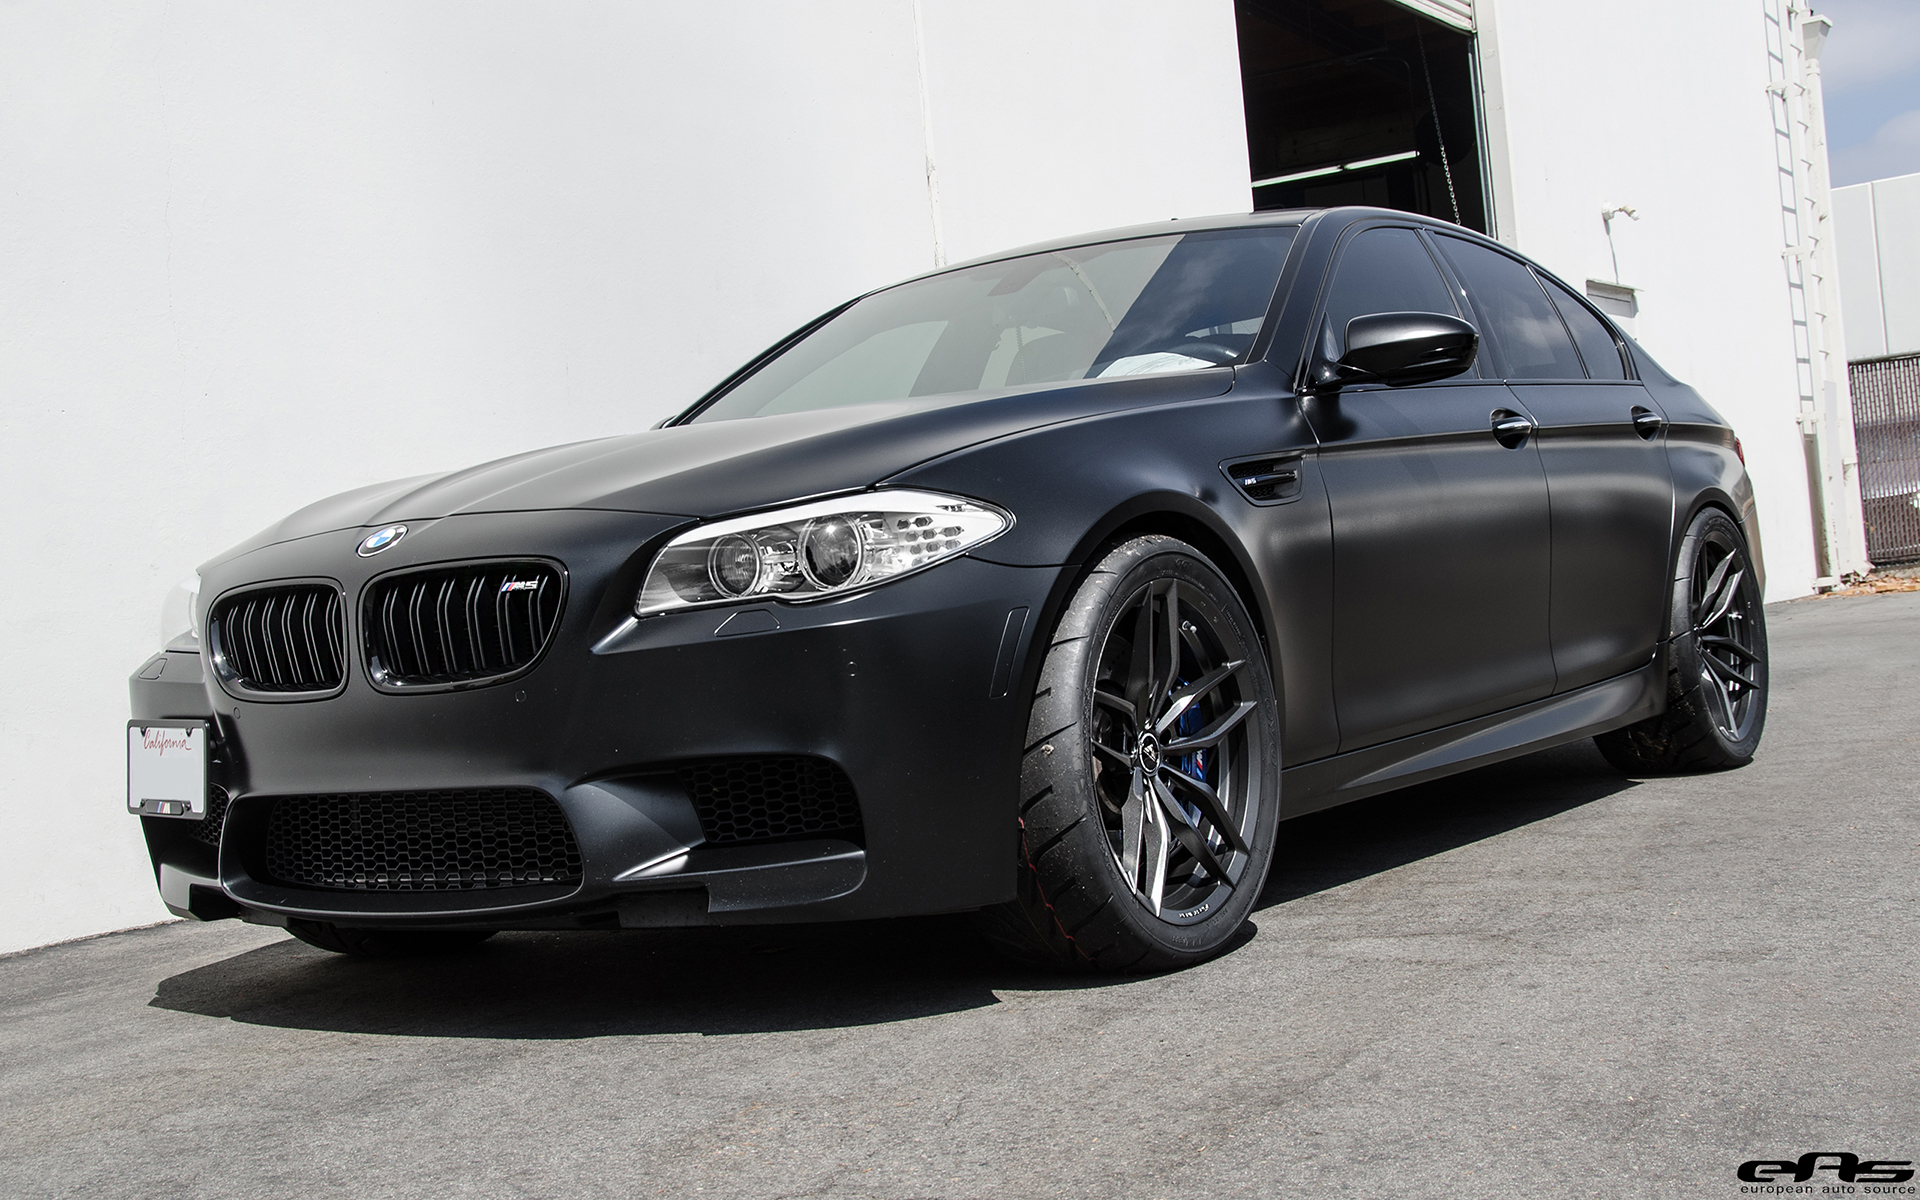 Matte Black Bmw F10 M5 Gets Vorsteiner Flow Forged Wheels